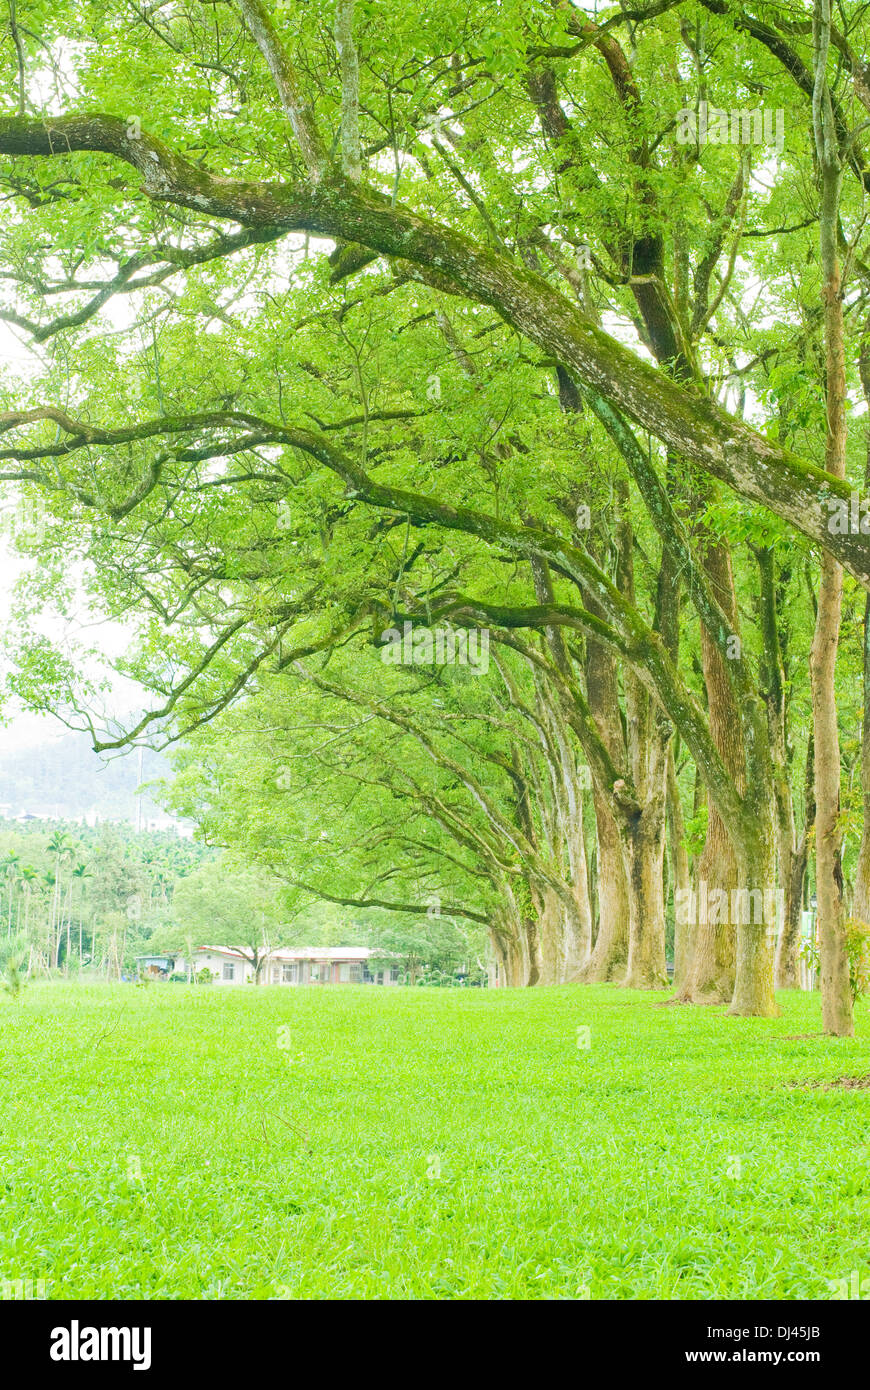 Row of trees and wide grassland - Stock Image